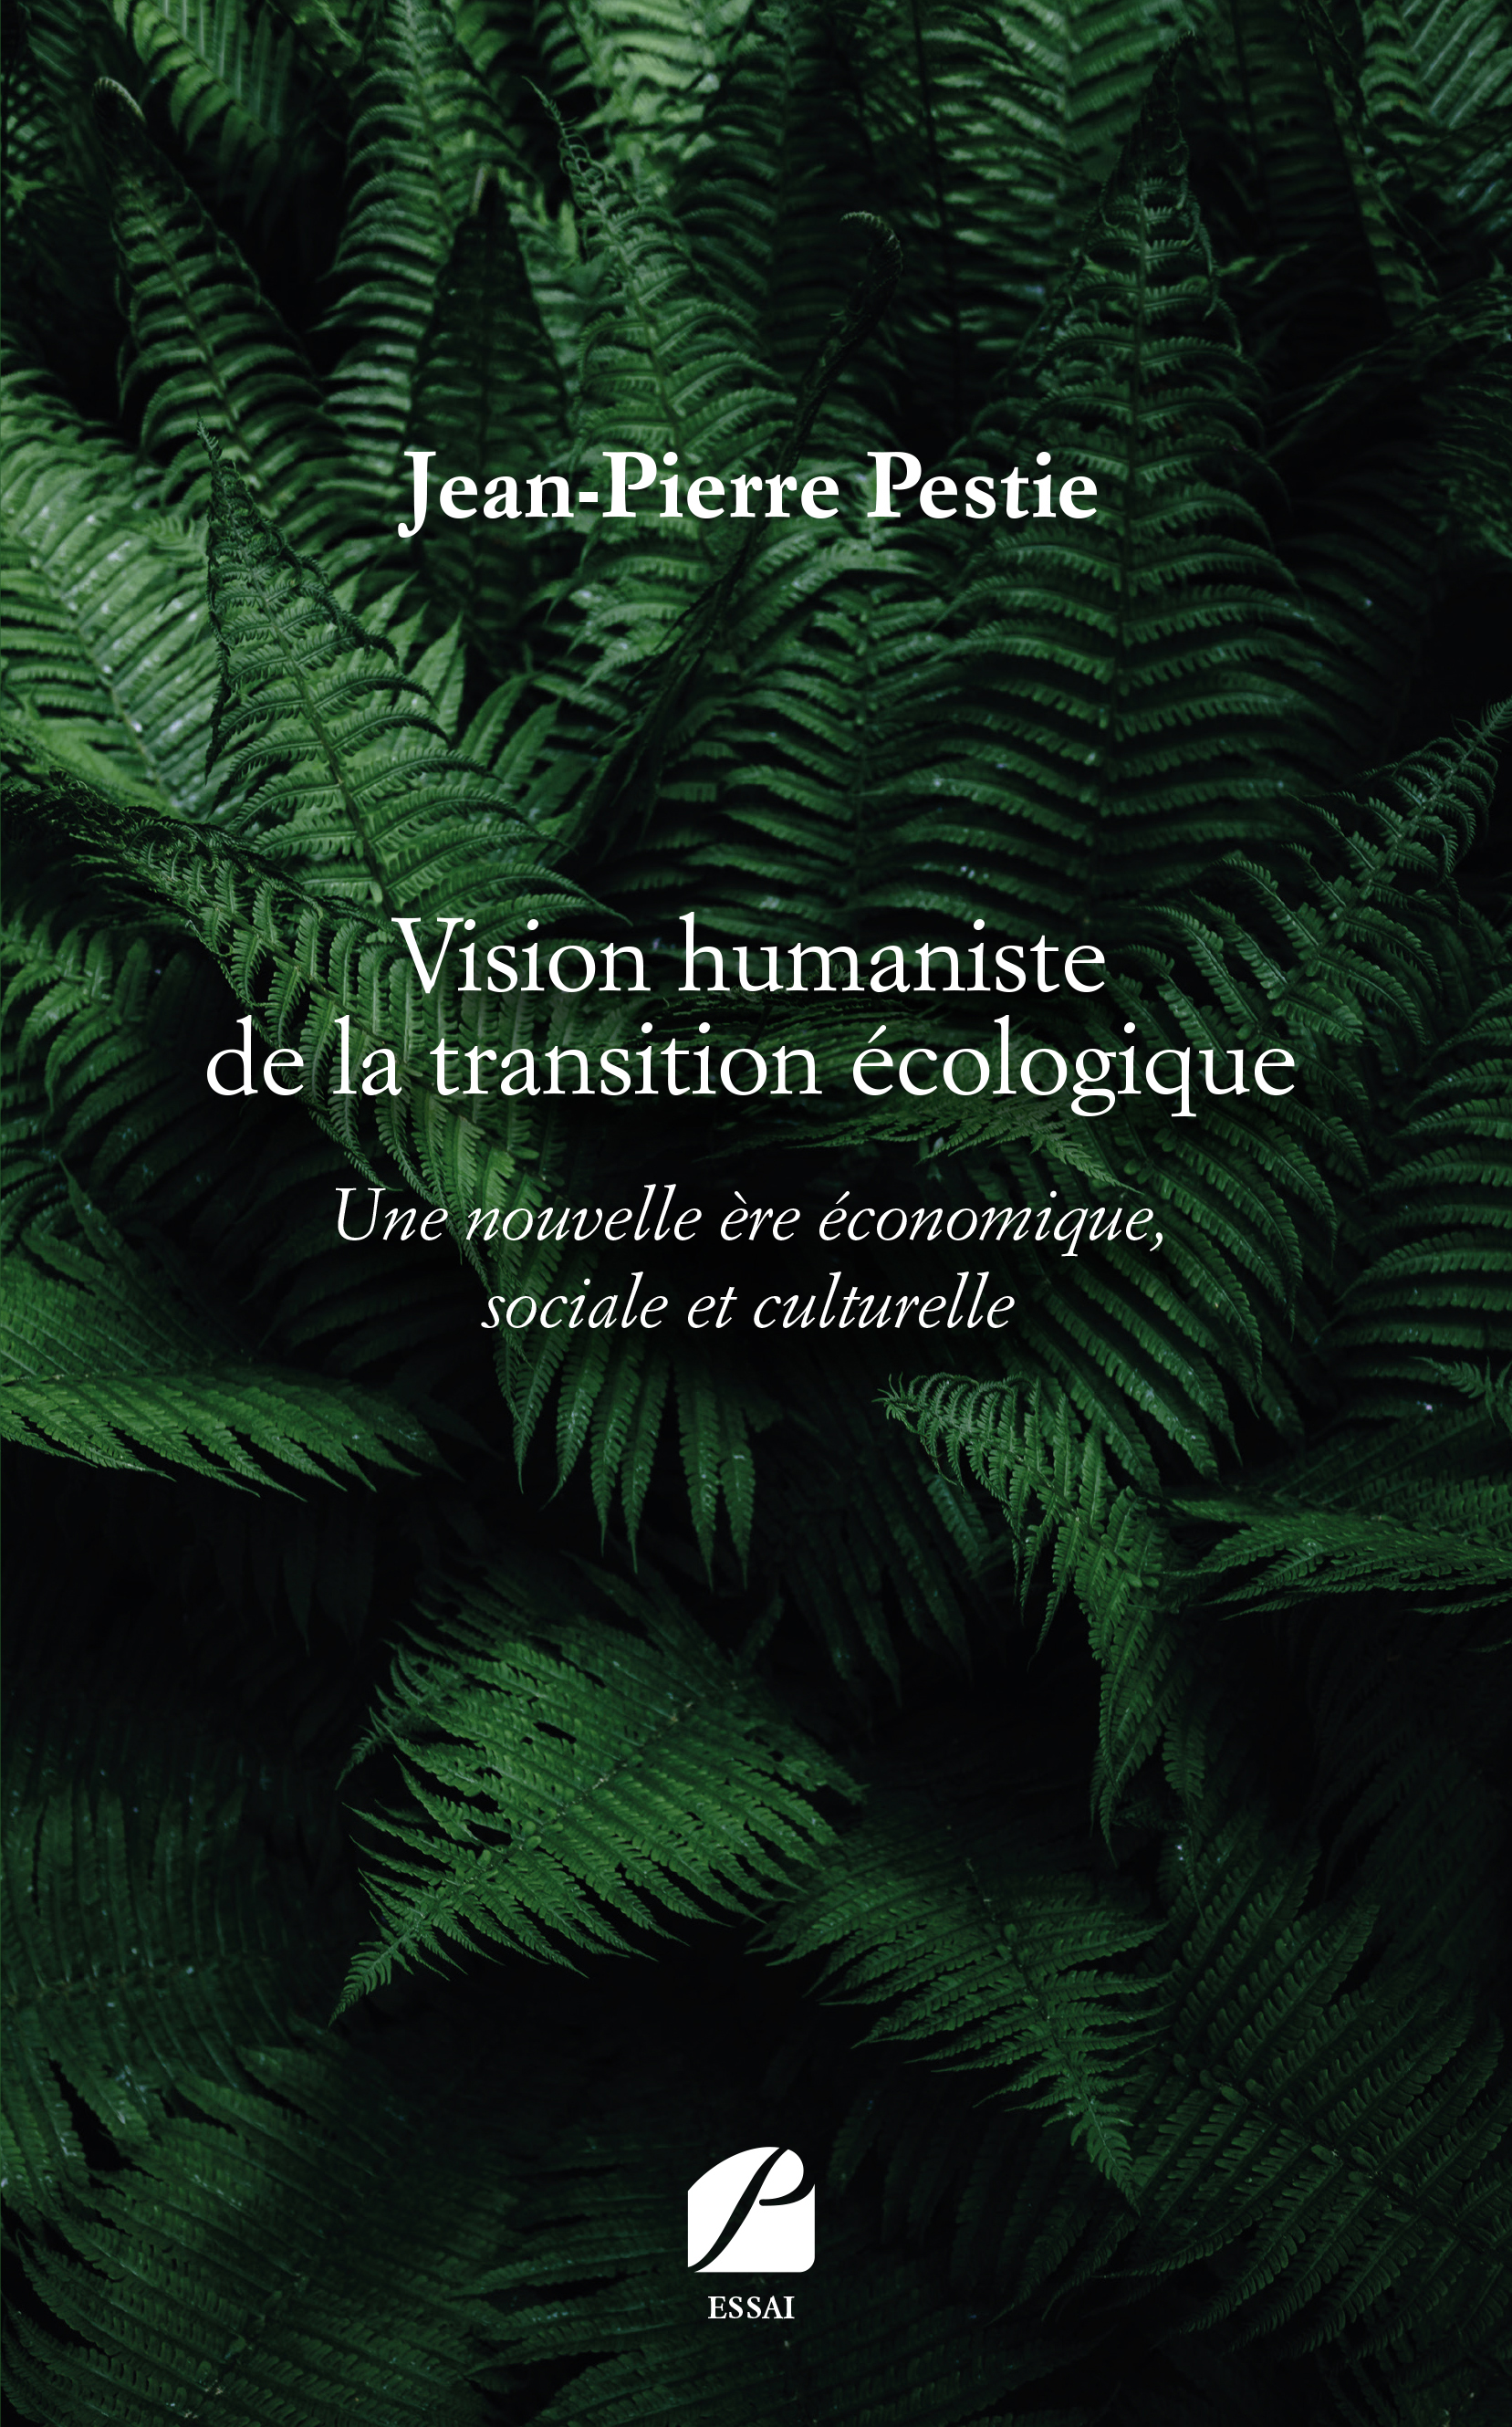 Vision humaniste de la transition écologique